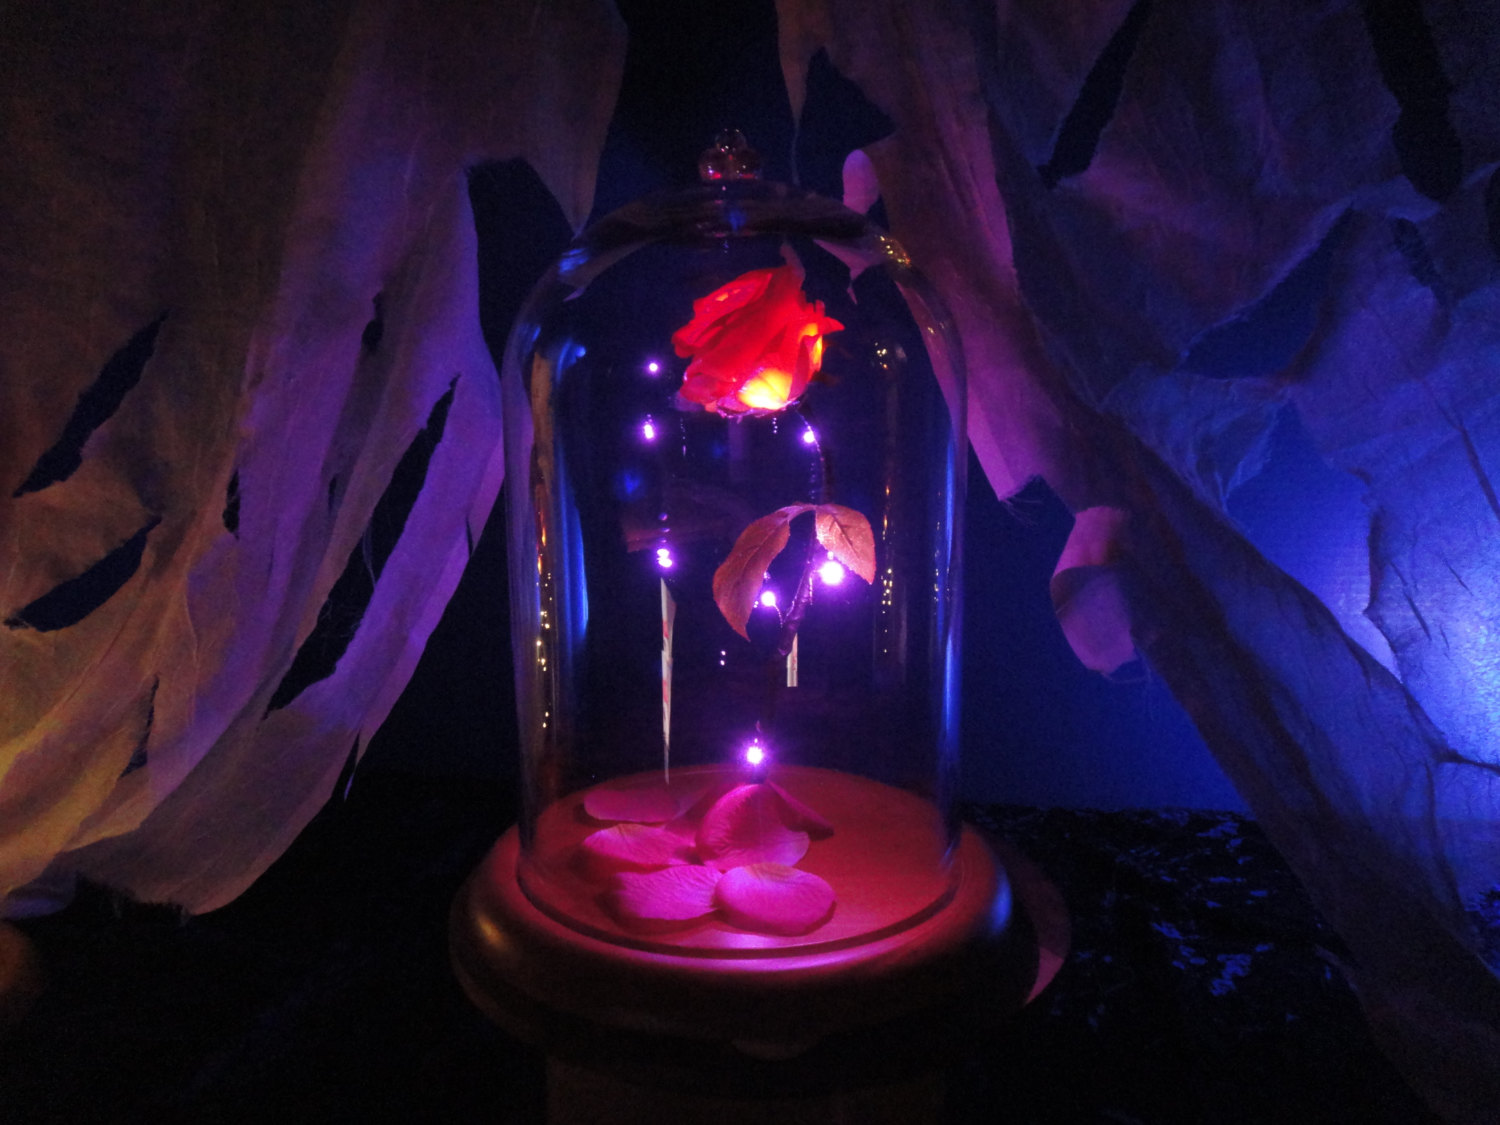 You Can Now Get Your Very Own Magical Enchanted Rose Just Like